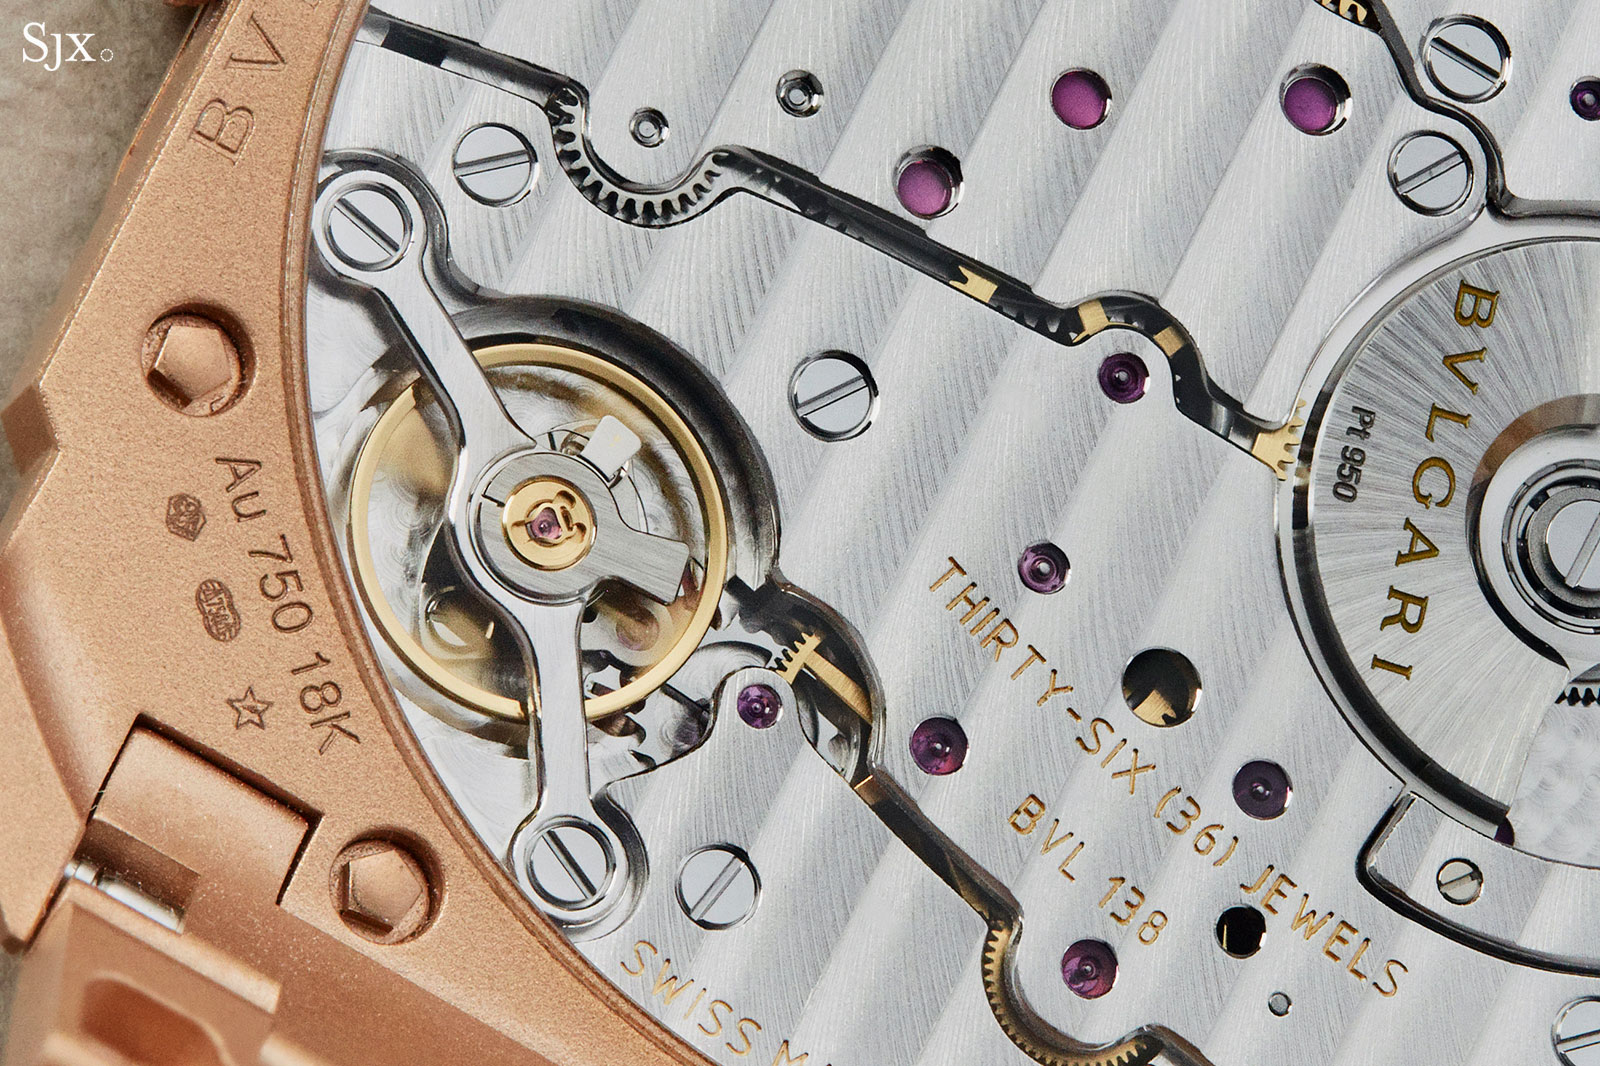 Bulgari Octo Finissimo Automatic rose gold 5